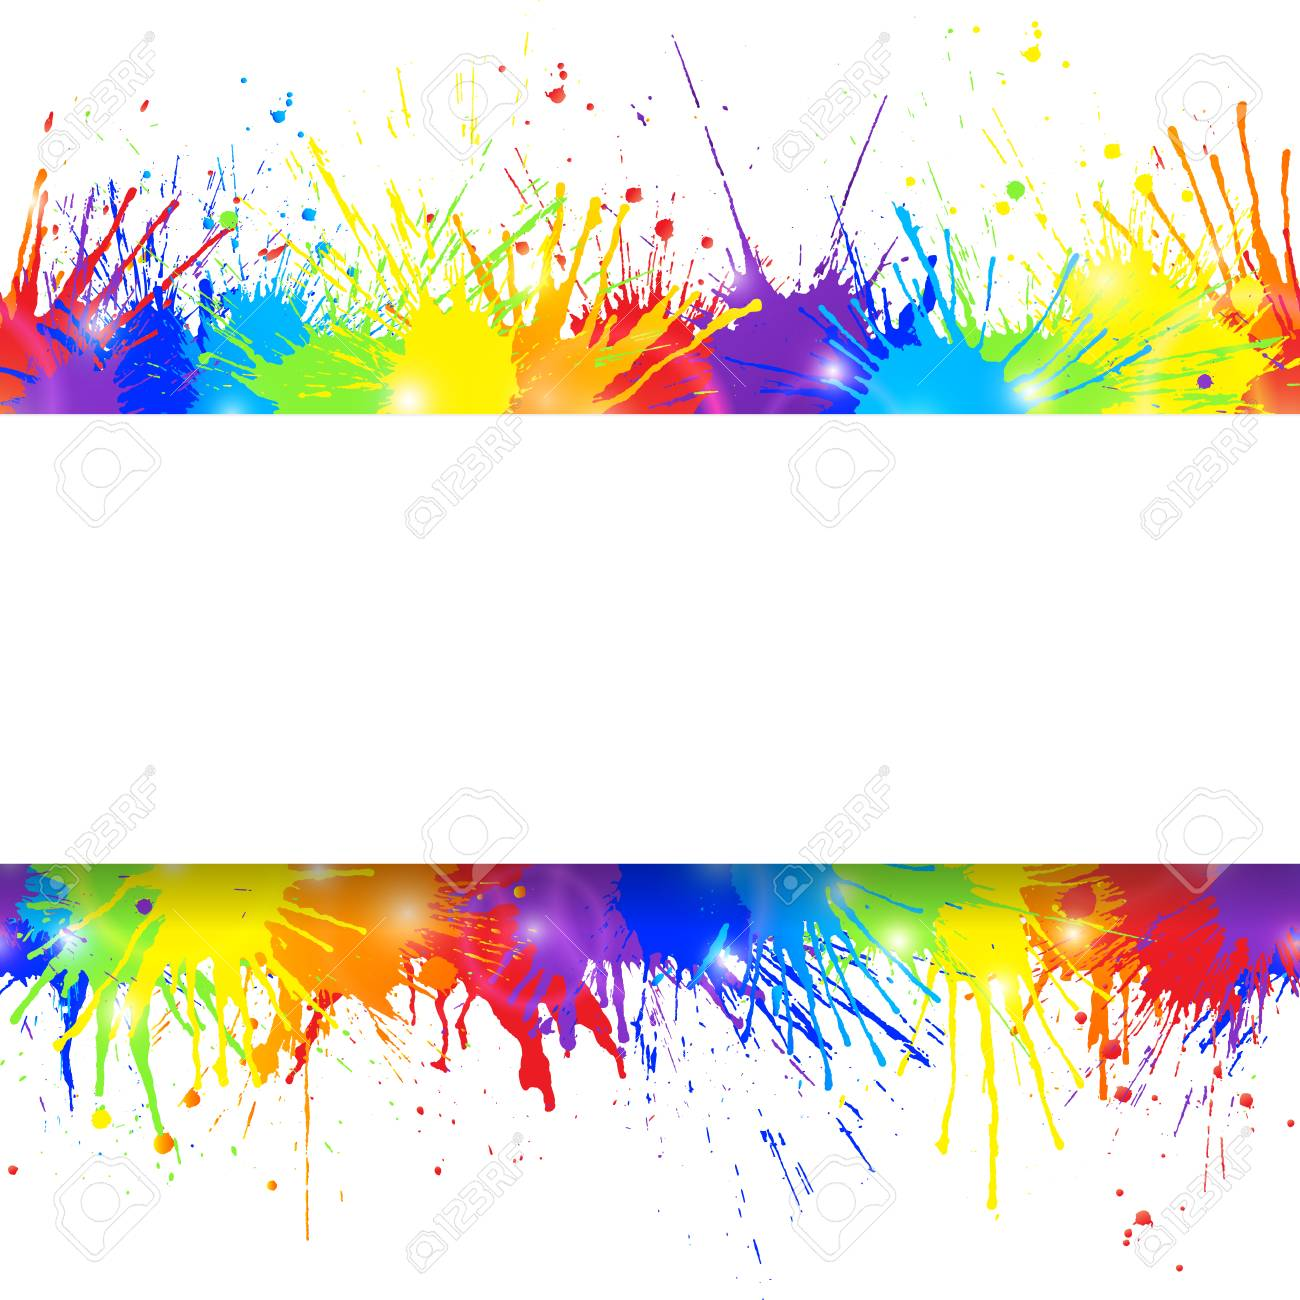 white banner on seamless colorful paint splashes background